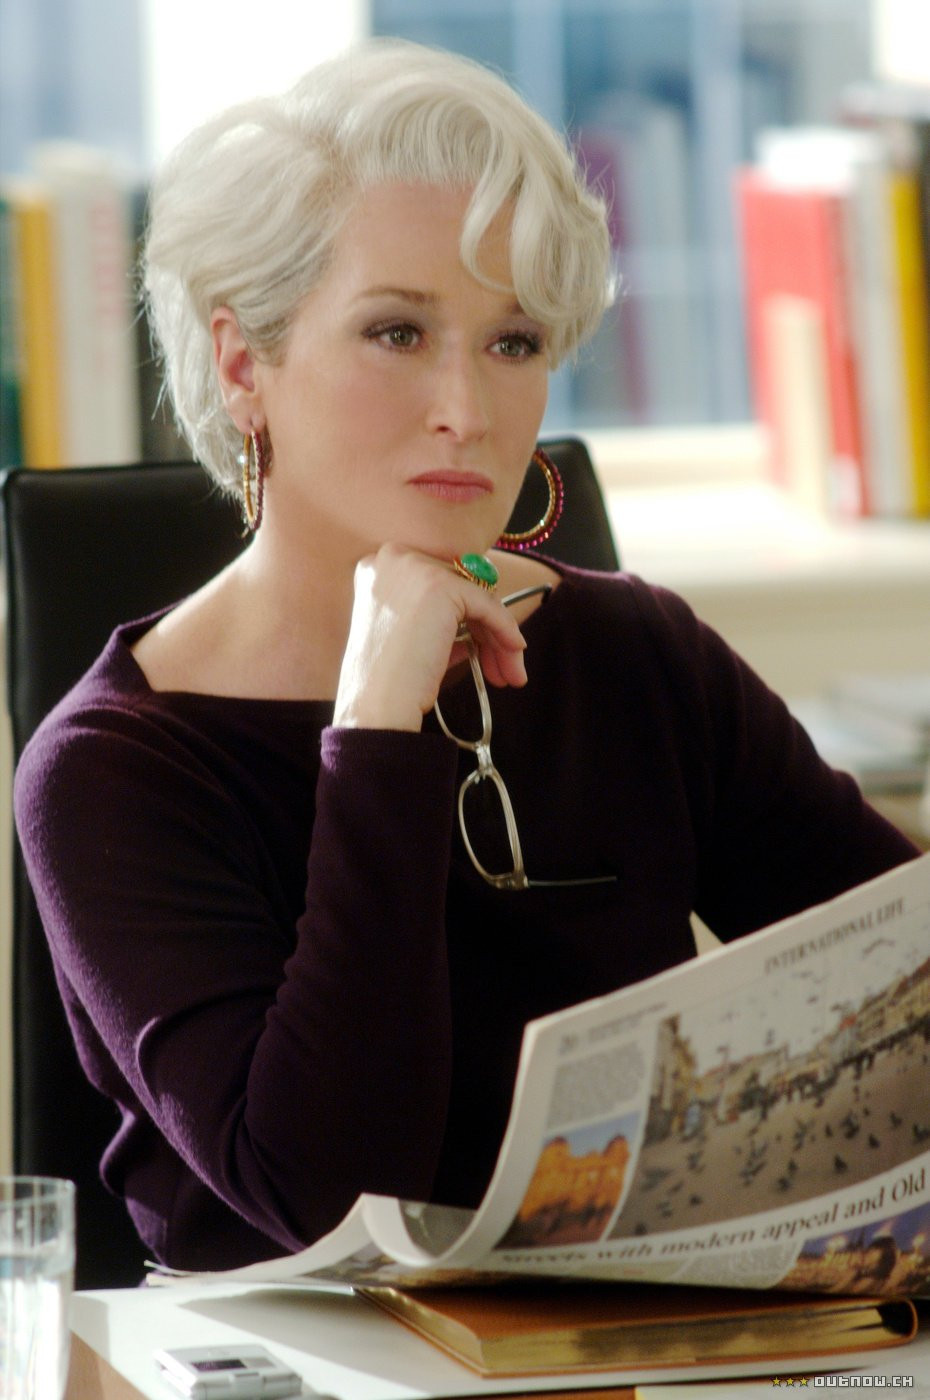 Meryl Streep as Miranda in 2006's 'The Devil Wears Prada'